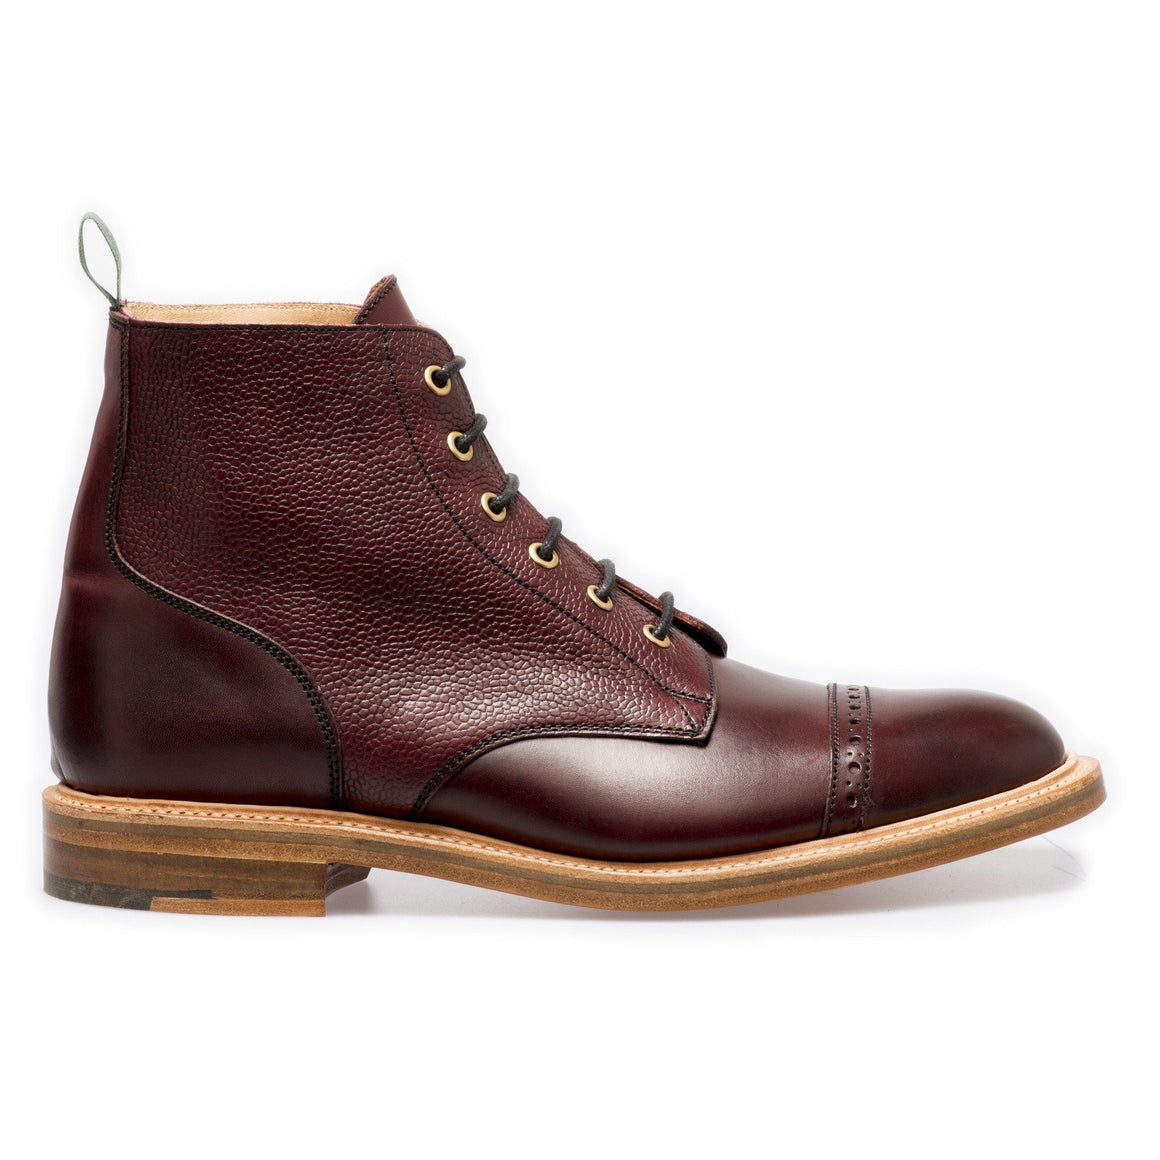 NPS EDEN Derby Straight Cap Boots - Burgundy Grain